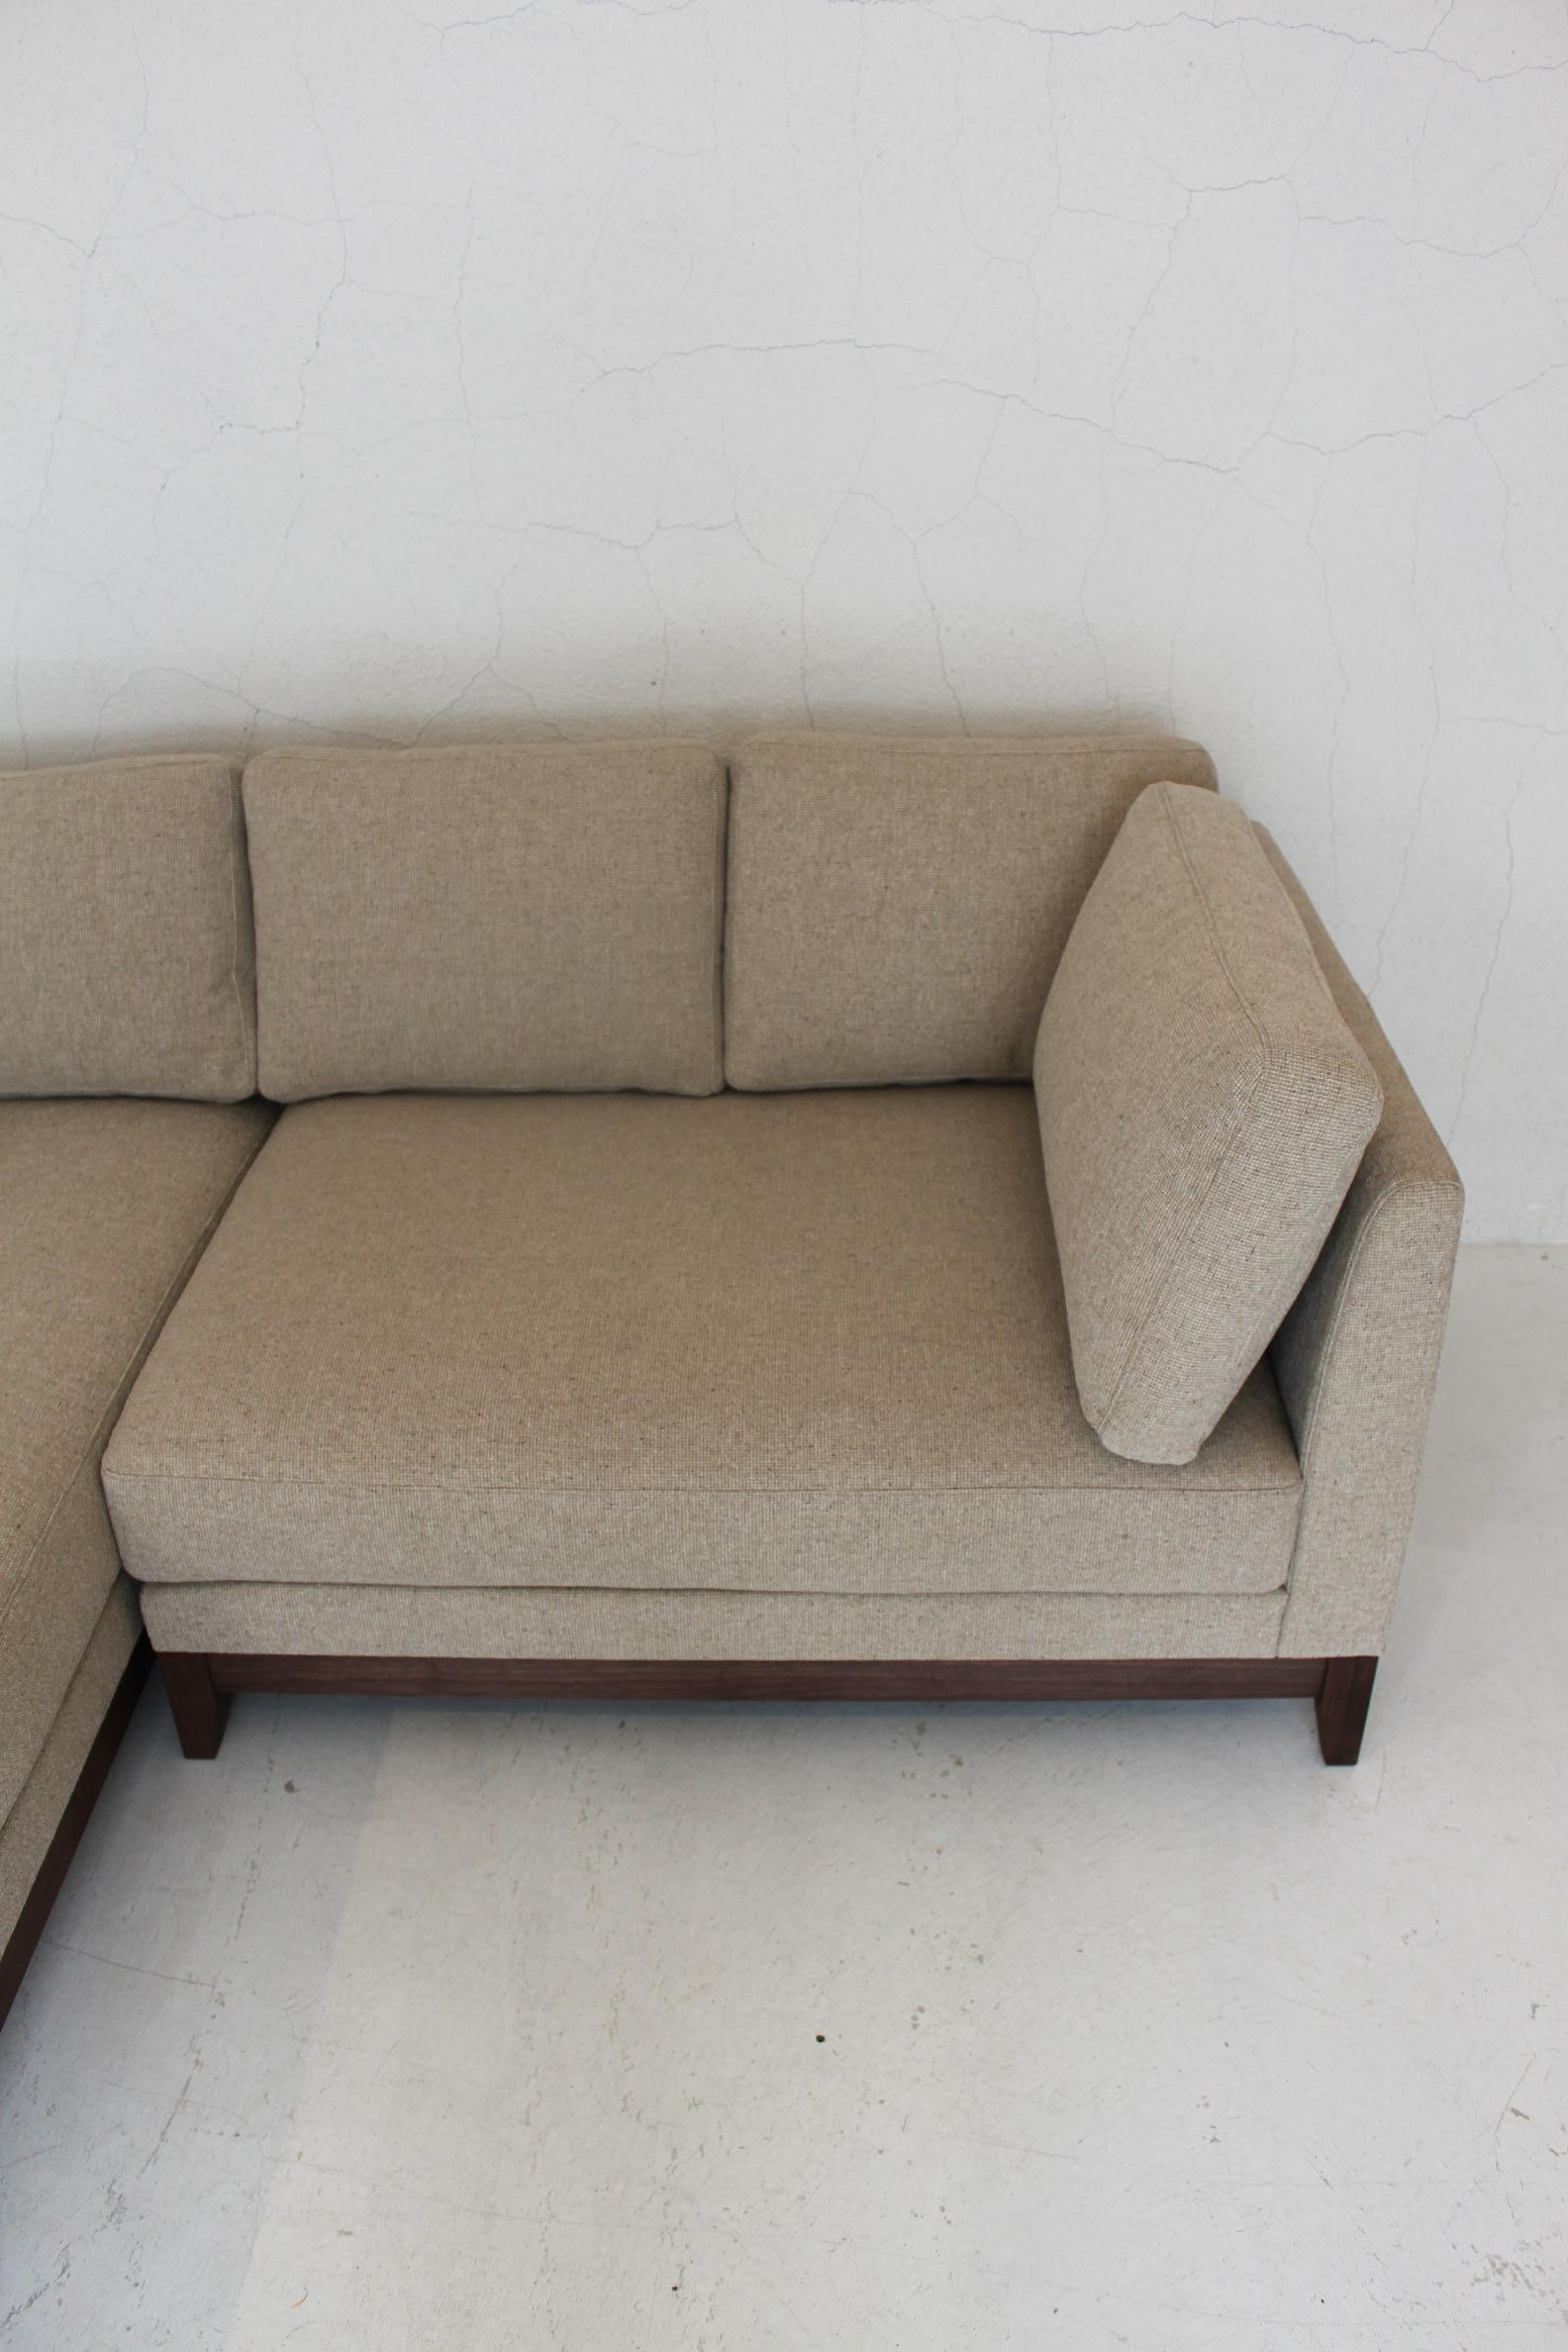 IW COUCH SOFA_c0146581_1773326.jpg